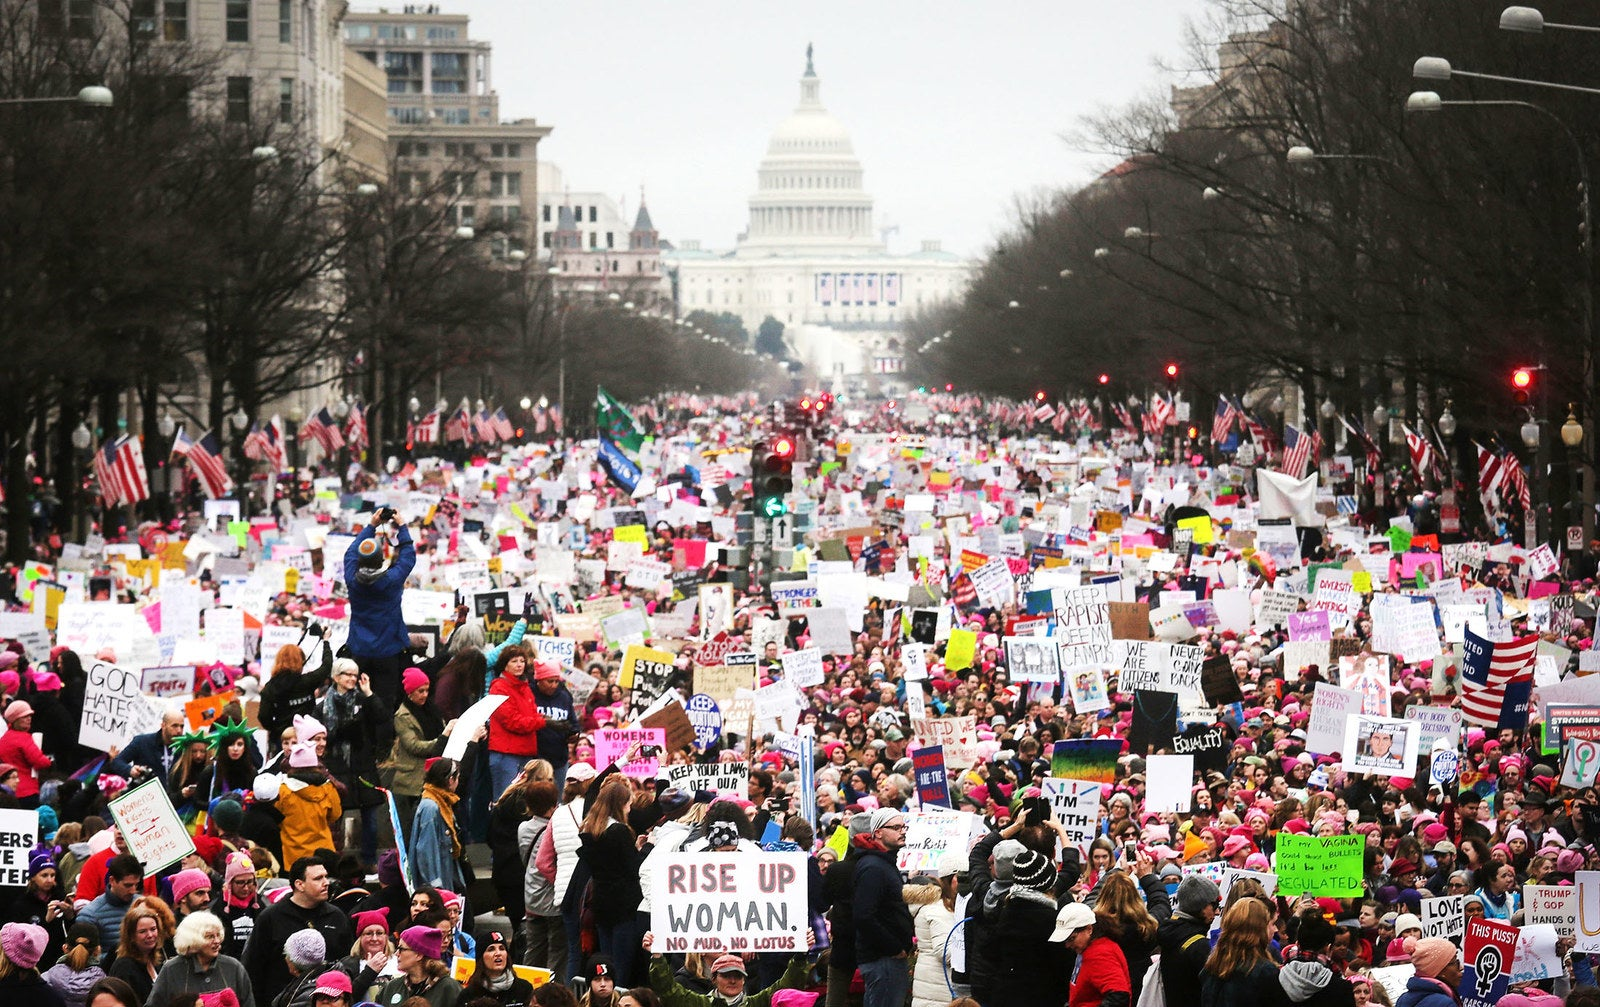 Protesters walk during the Women's March on Washington, with the US Capitol in the background, on Jan. 21 in Washington, DC. Large crowds attended the anti-Trump rally a day after Donald Trump was sworn in as the 45th US president.